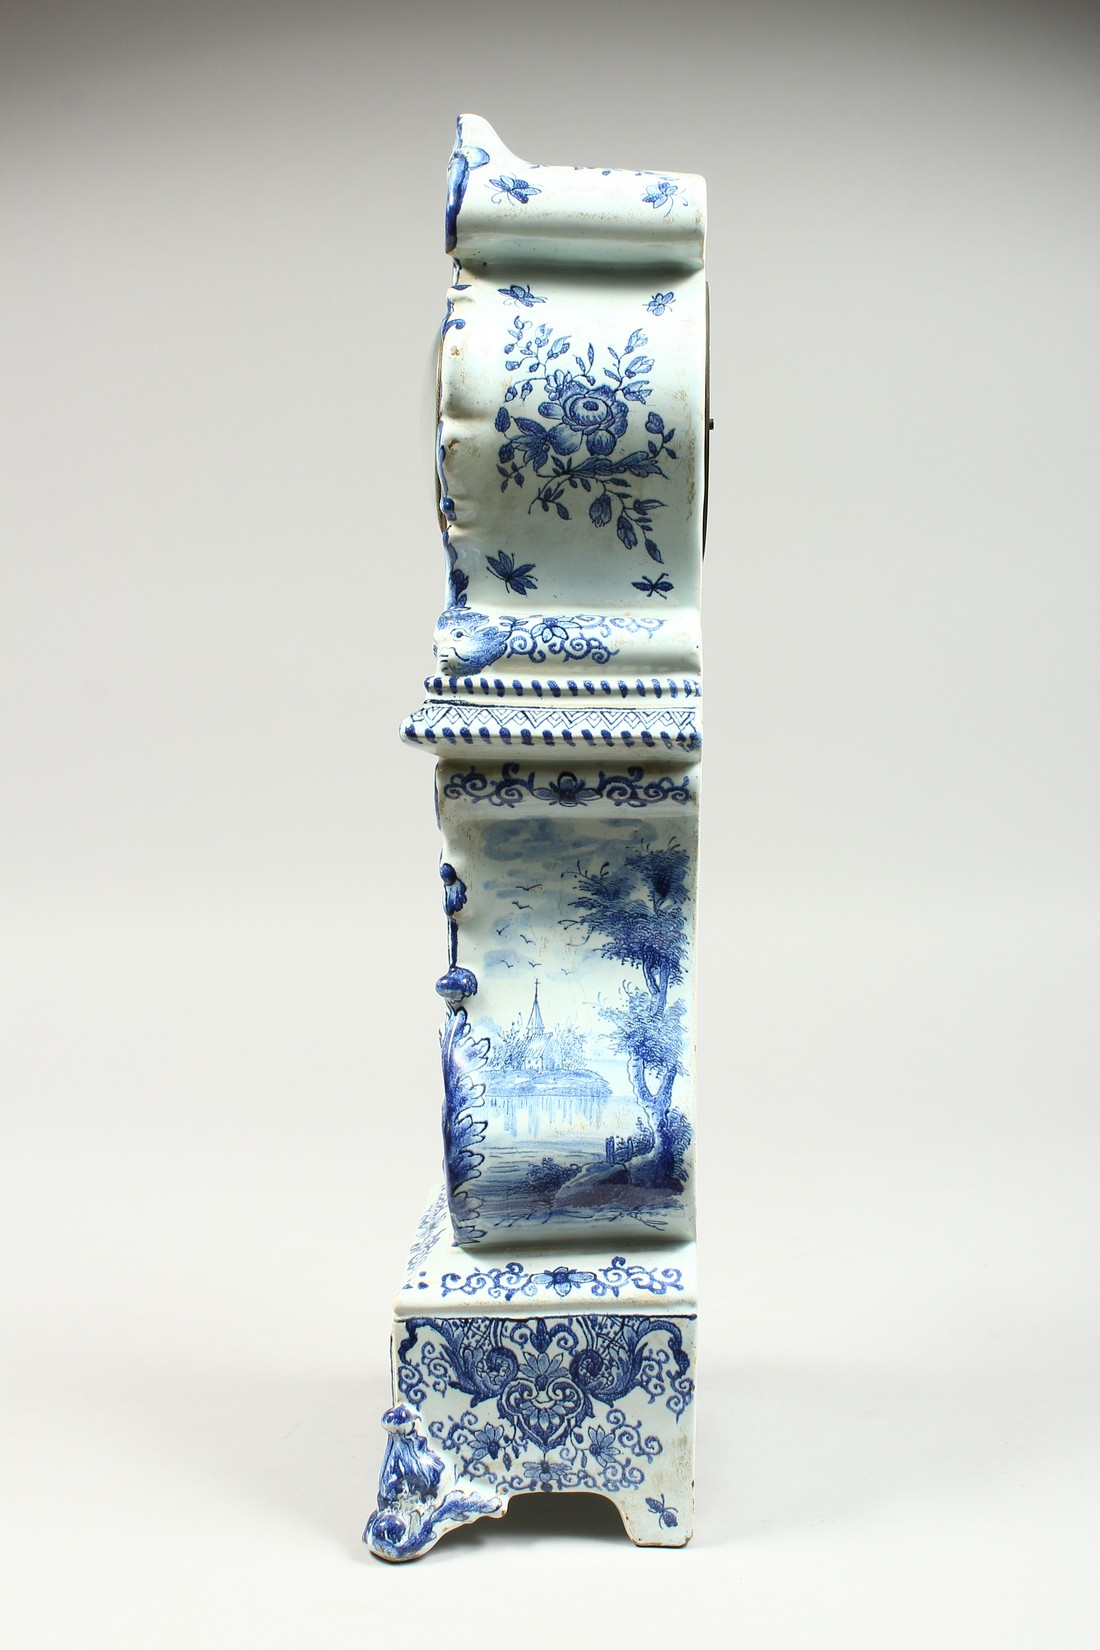 A 19TH CENTURY DUTCH BLUE AND WHITE MINIATURE PORCELAIN LONGCASE CLOCK, the movement by Charles - Image 3 of 8